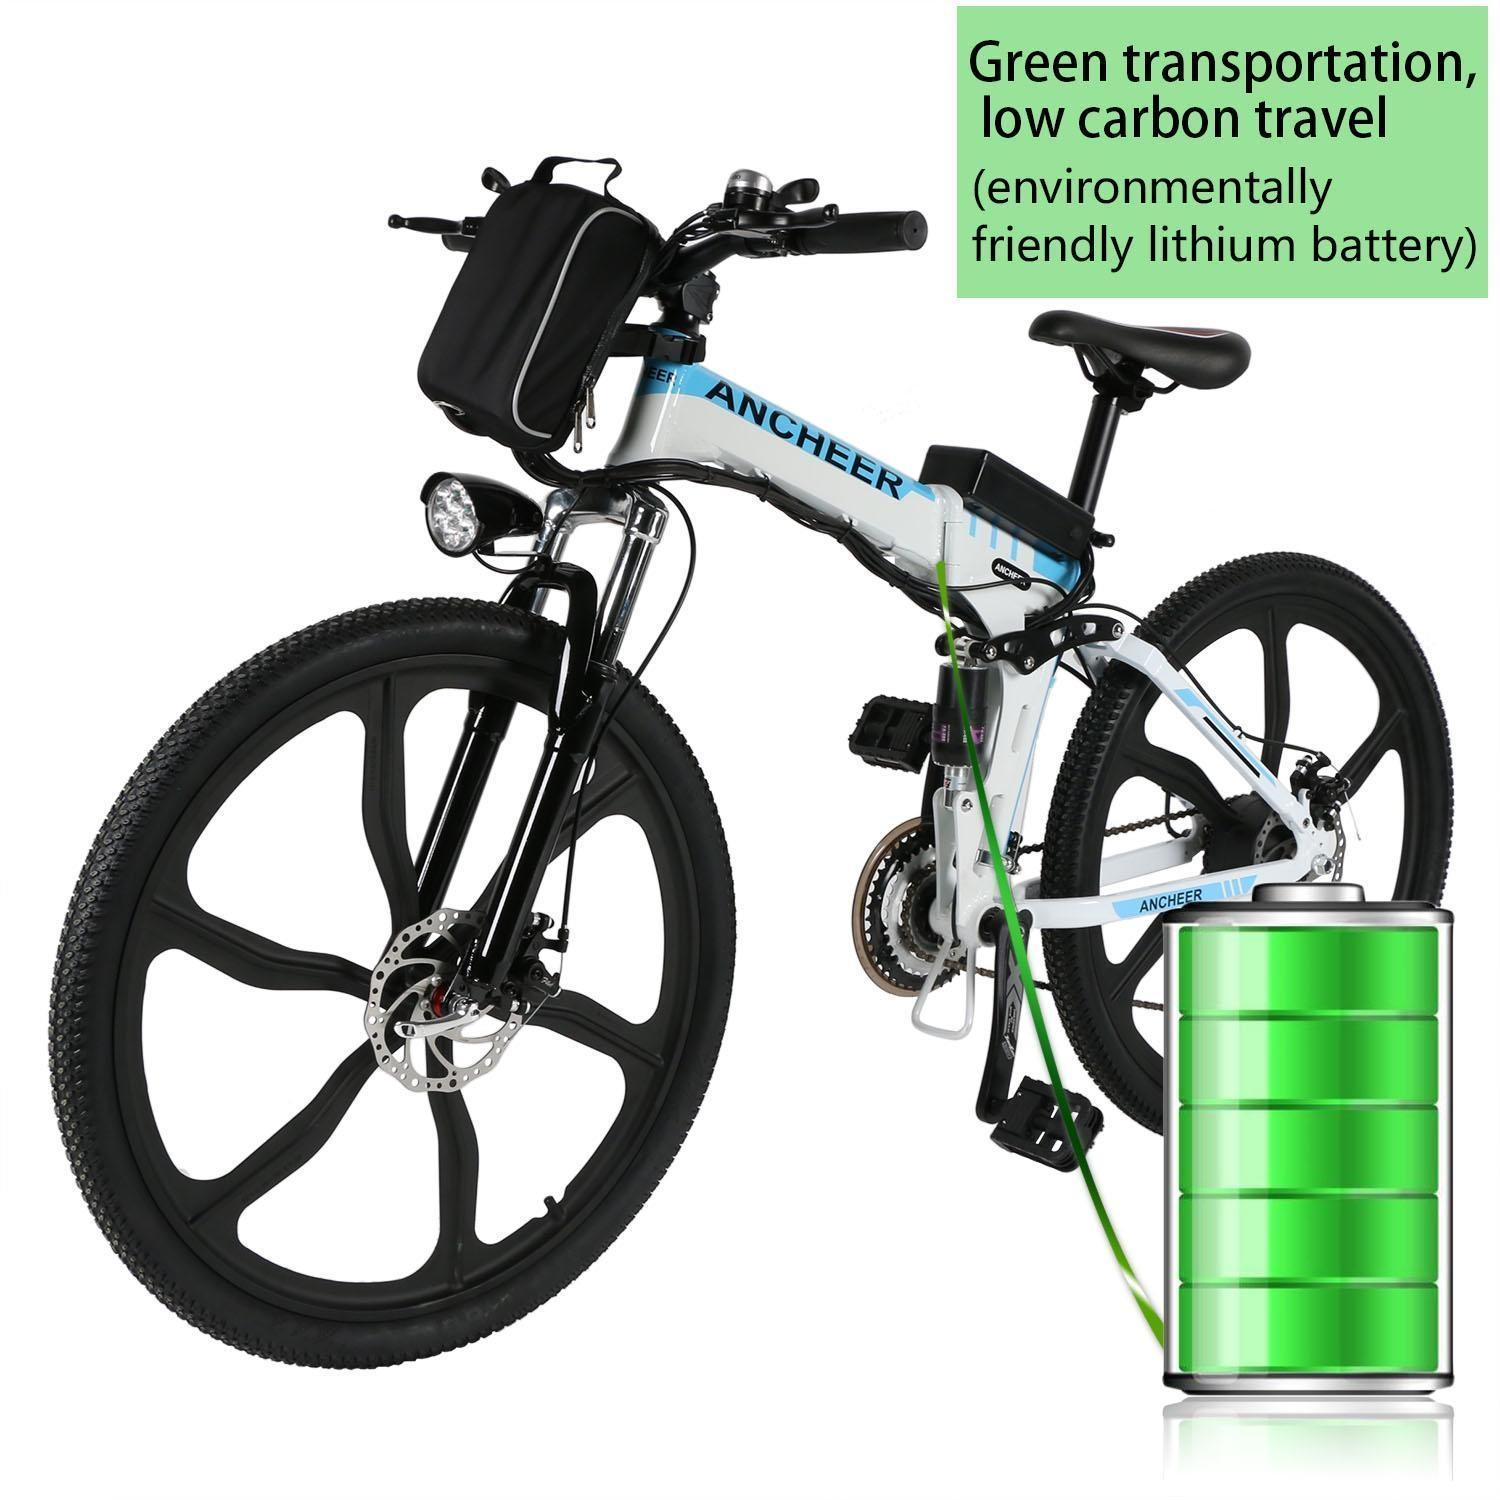 "Ancheer Electric Bike 26"" 36V Foldable Bike Electric Power Mountain Bike Bicycle with Lithium-Ion Battery"